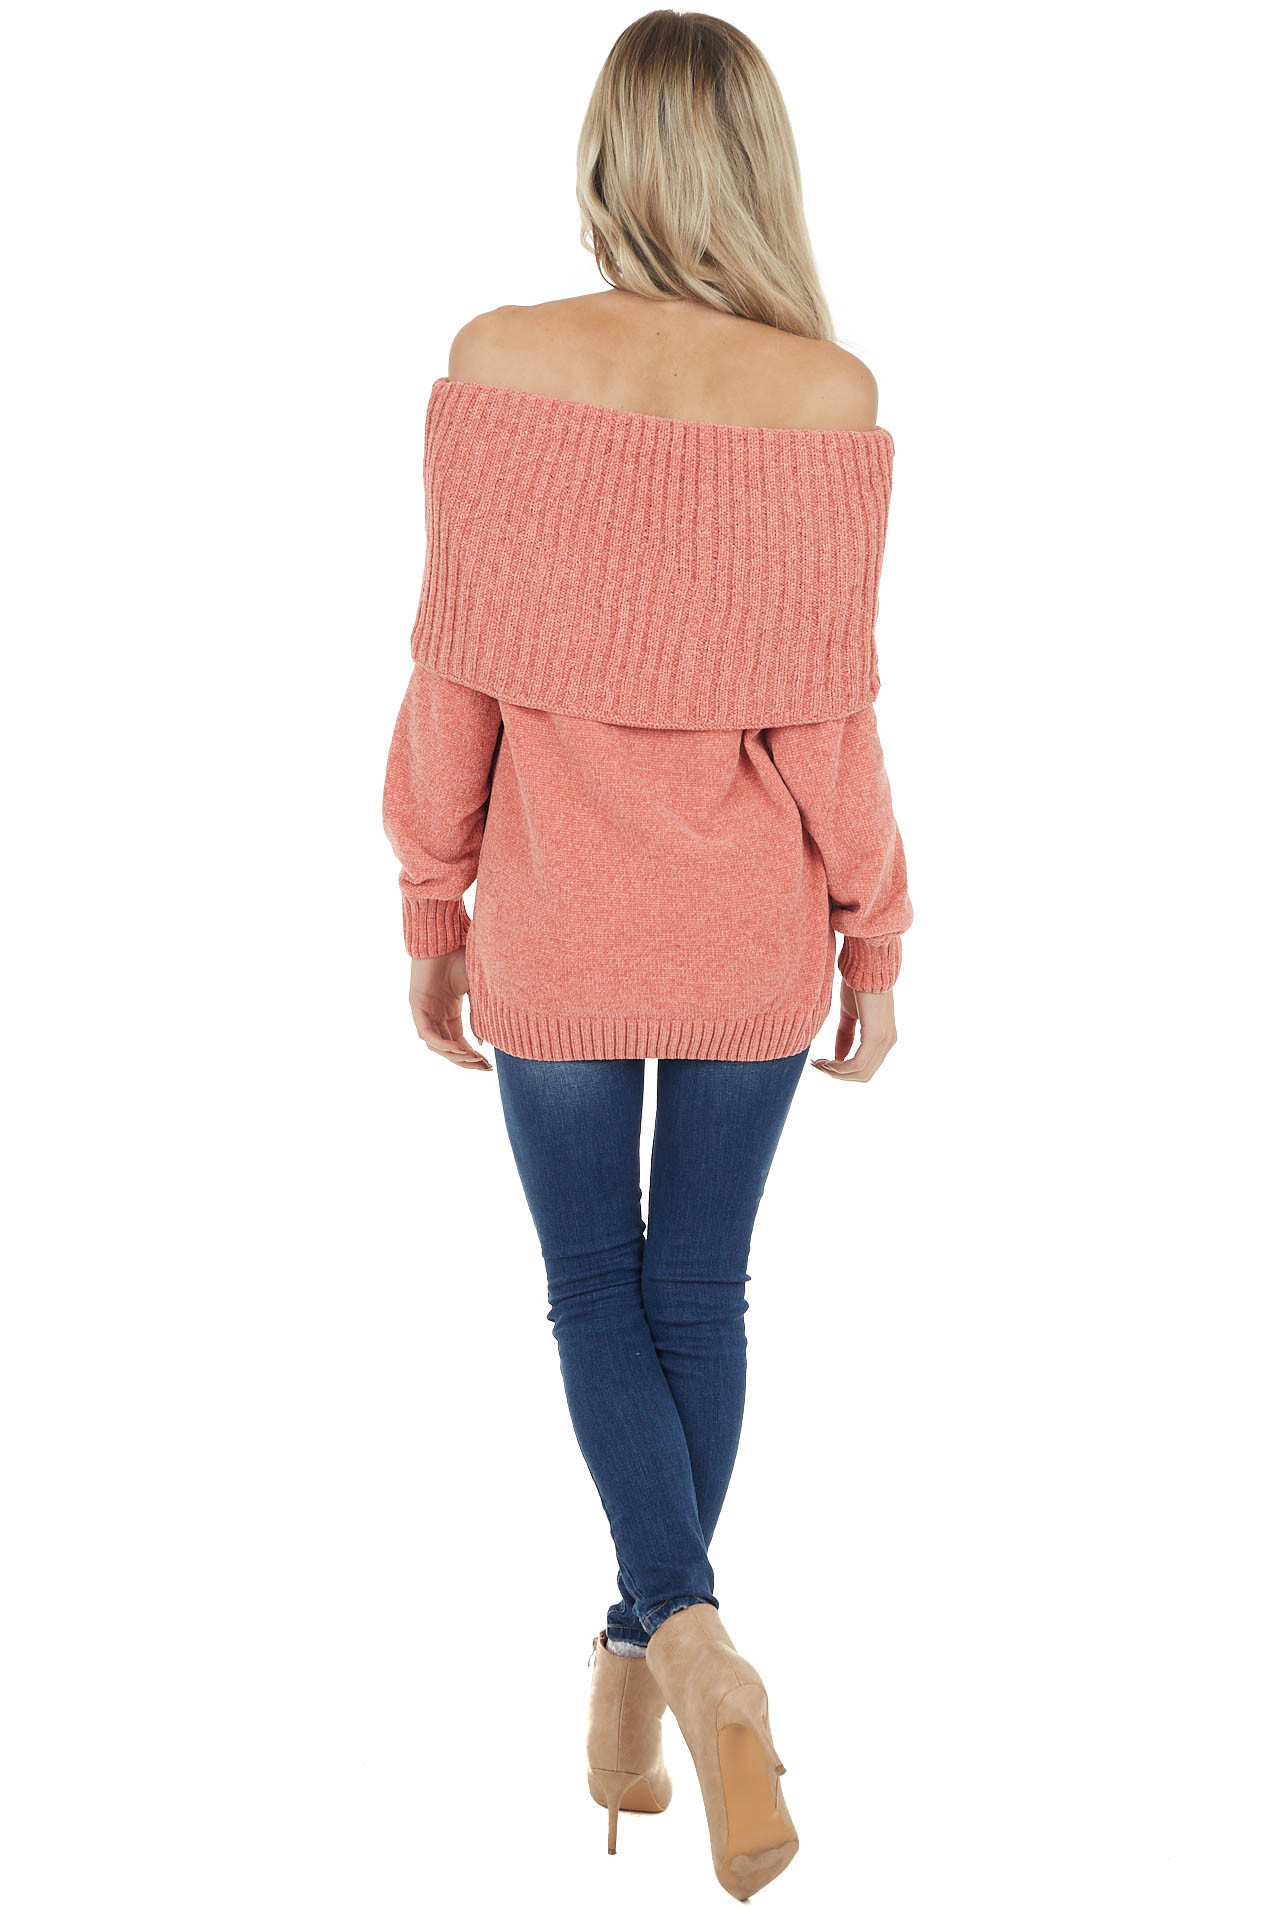 Coral Long Sleeve Off the Shoulder Super Soft Sweater